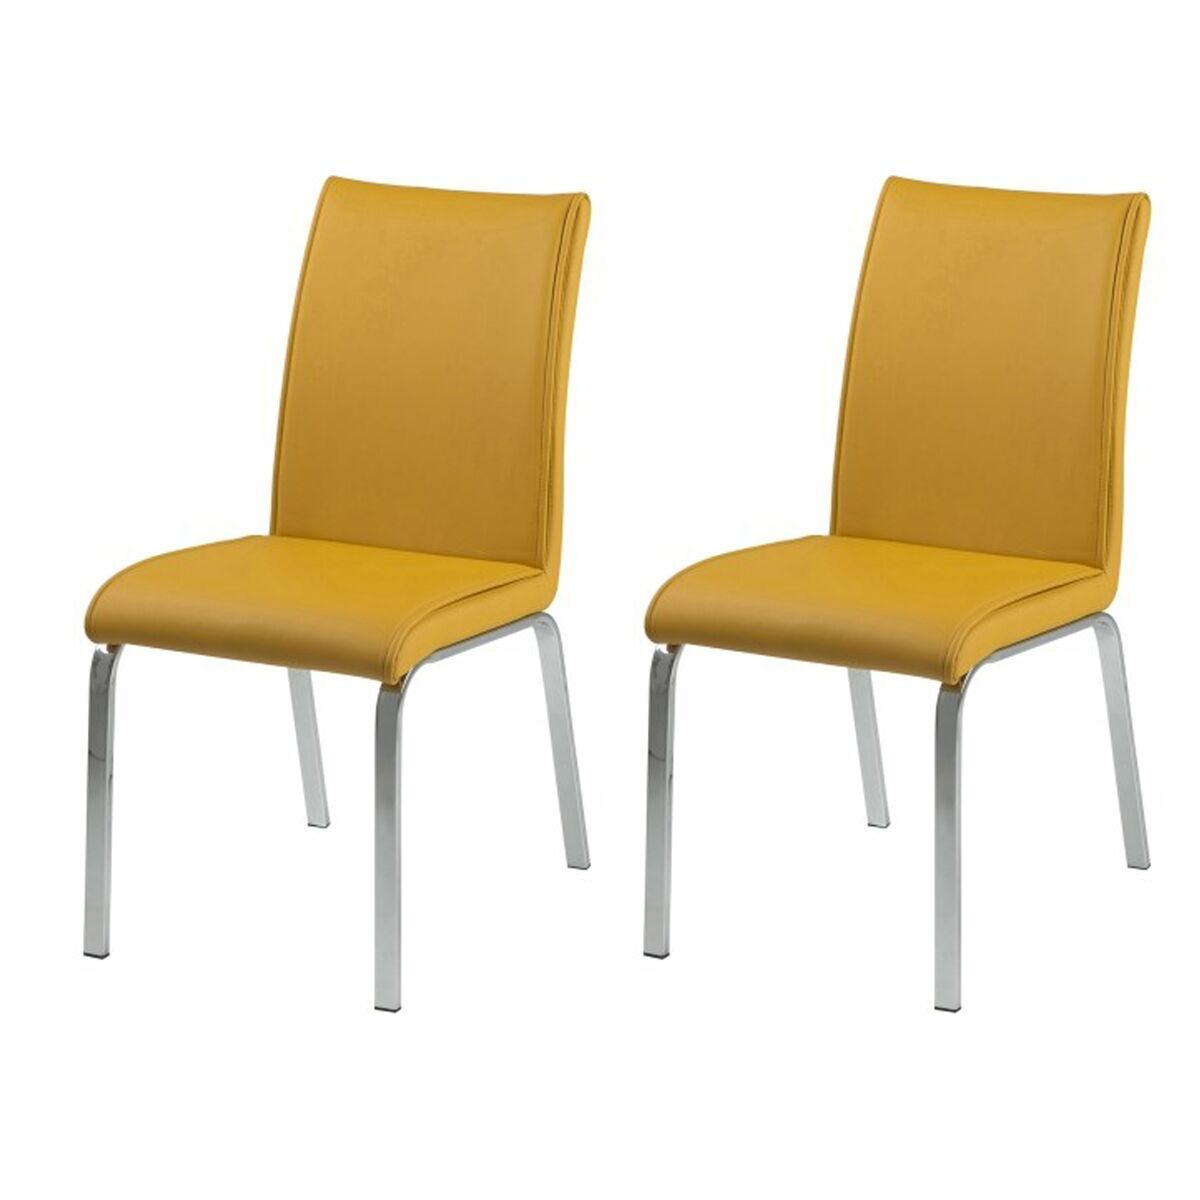 wood legs with inspired chair eiffel fusion light seating dining chairs plastic image living squared yellow